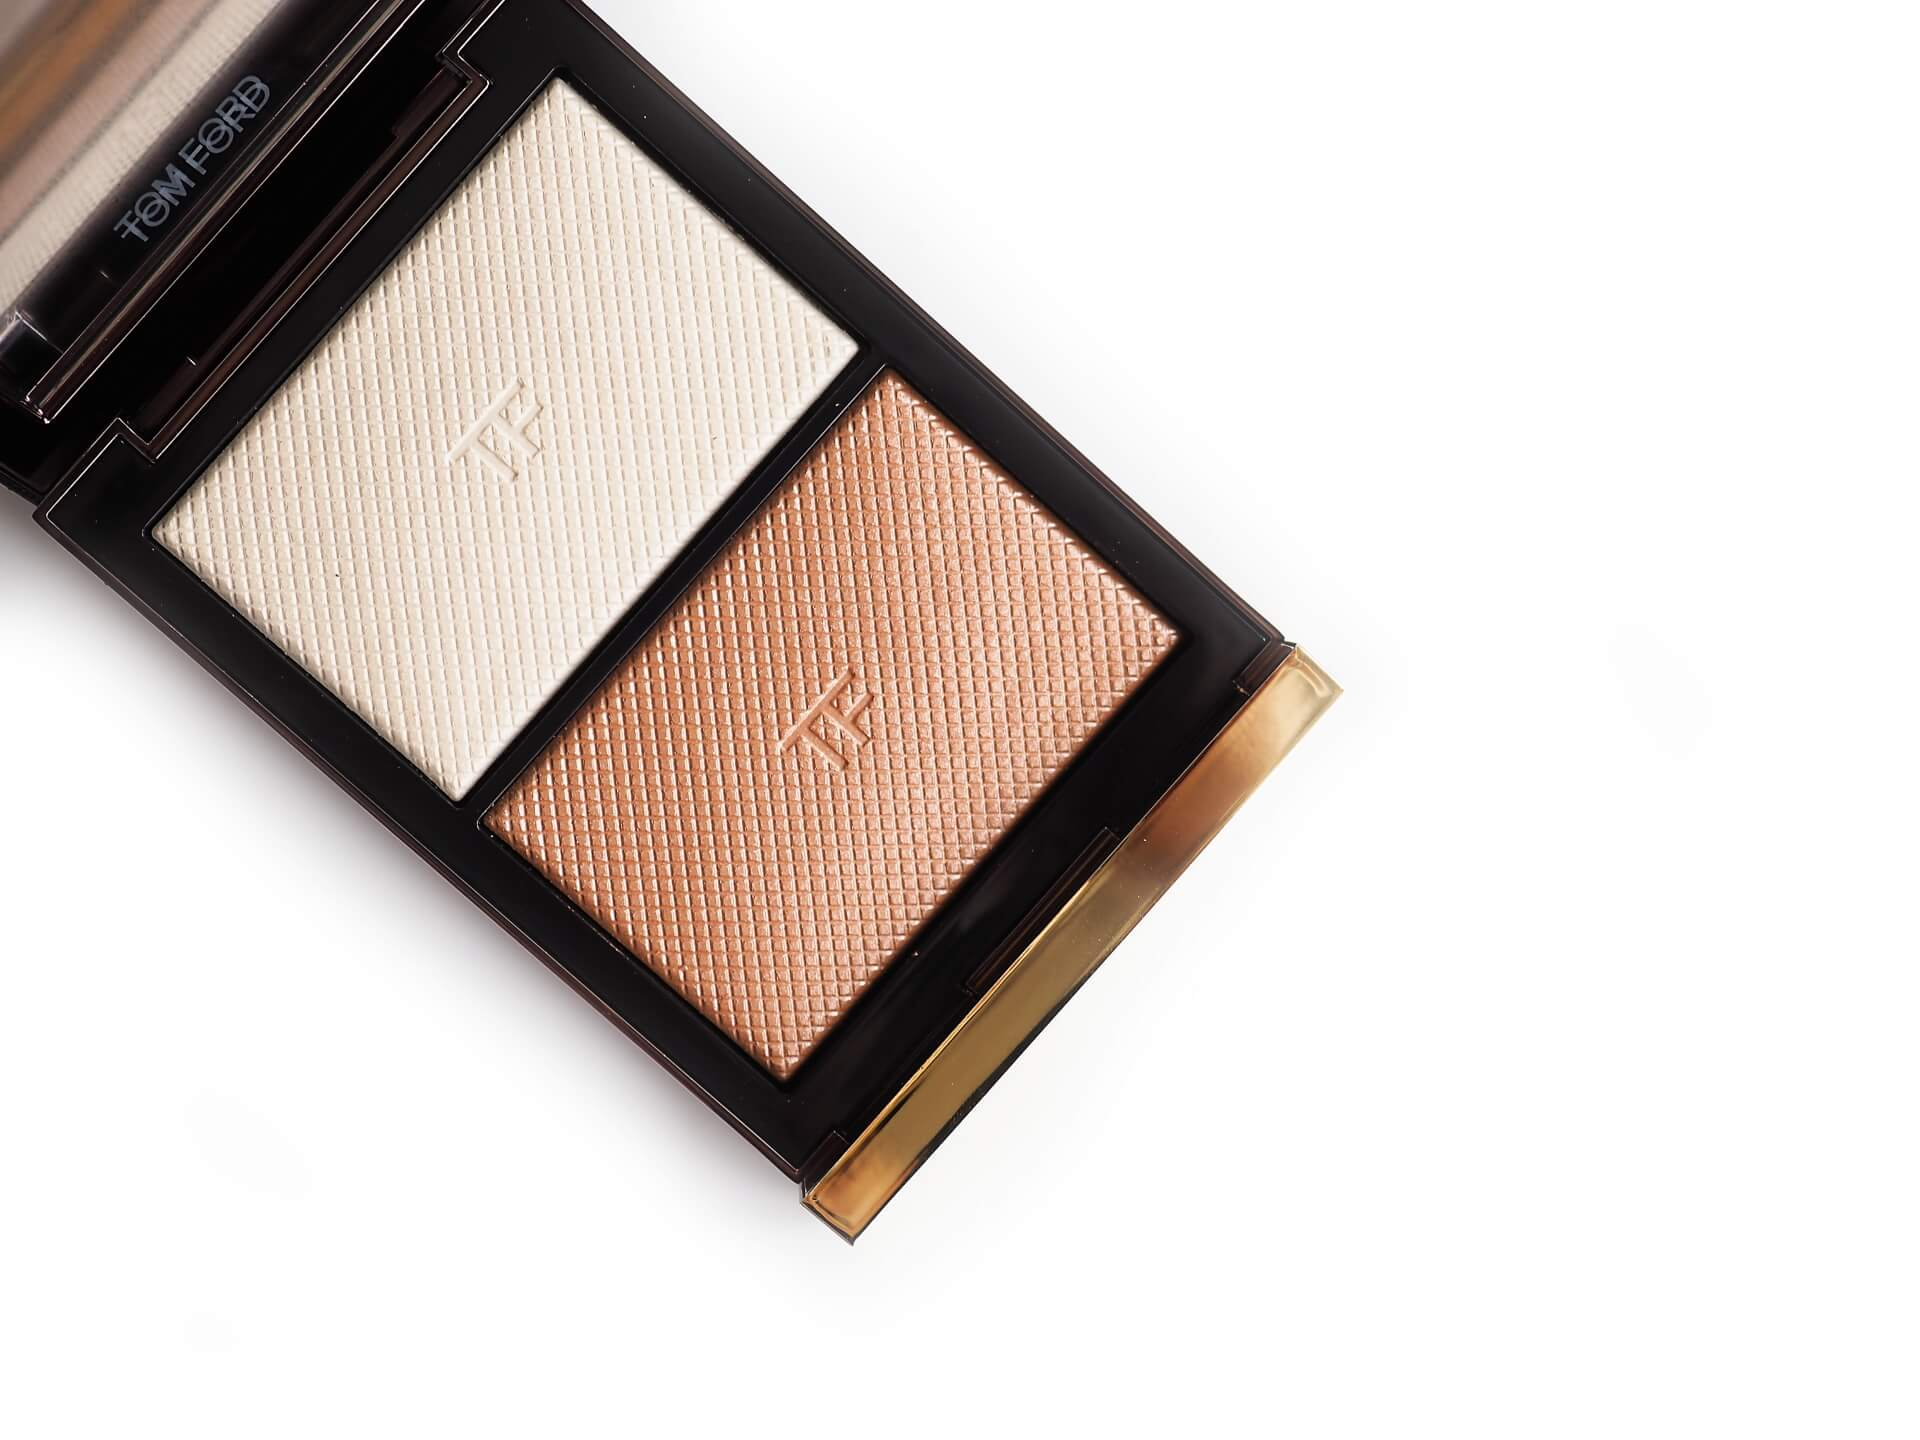 Tom Ford Skin Illuminating Powder Duo